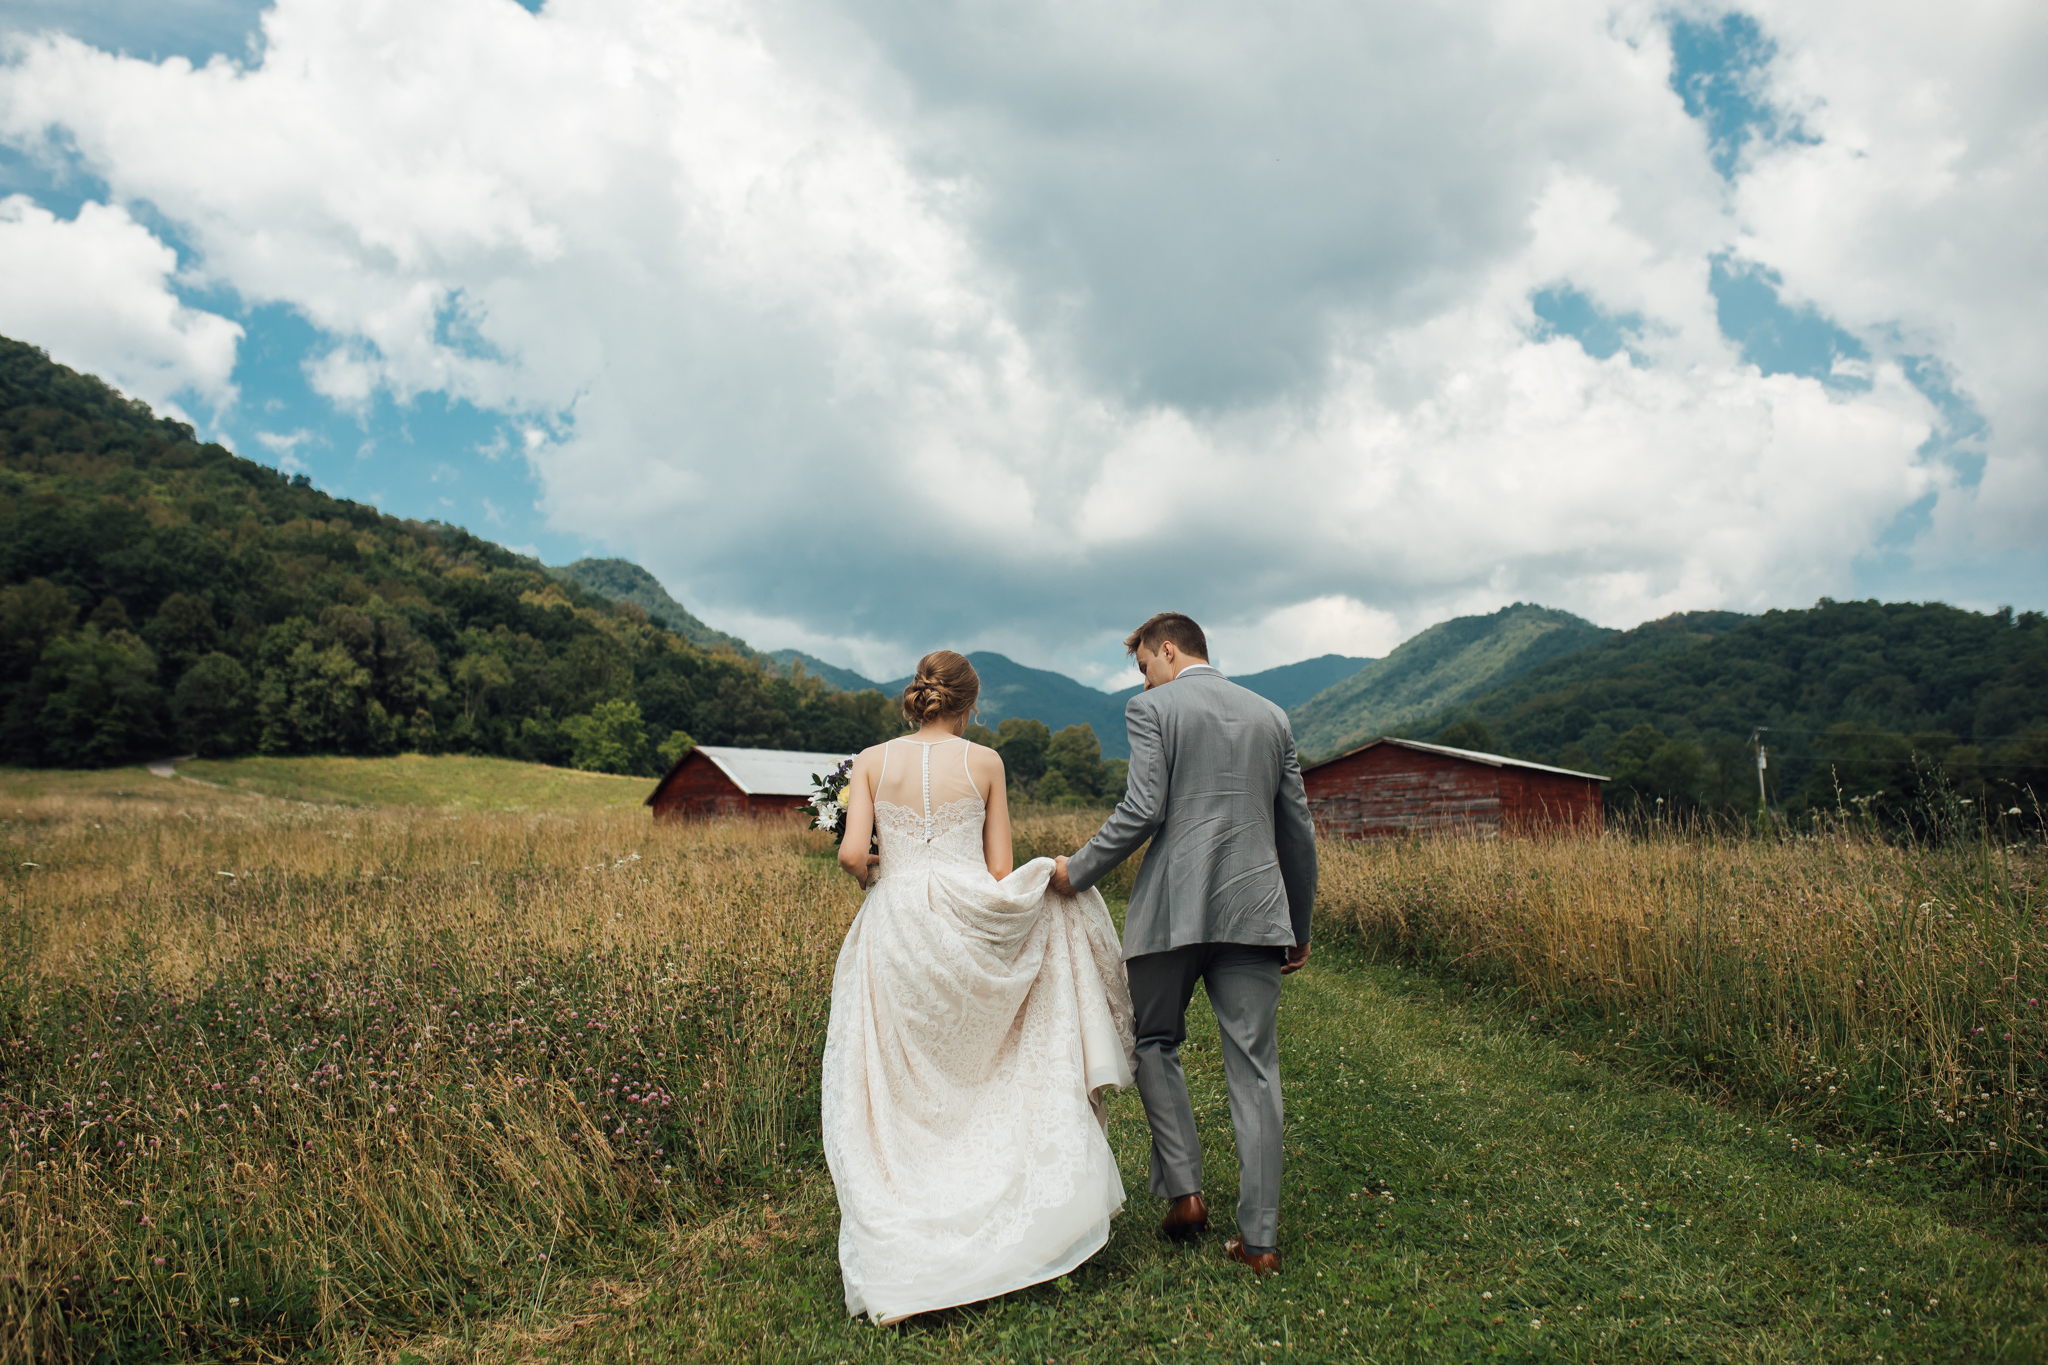 ashville-wedding-photographers-thewarmtharoundyou--backyard-asheville-wedding-mountain-wedding (66 of 244).jpg